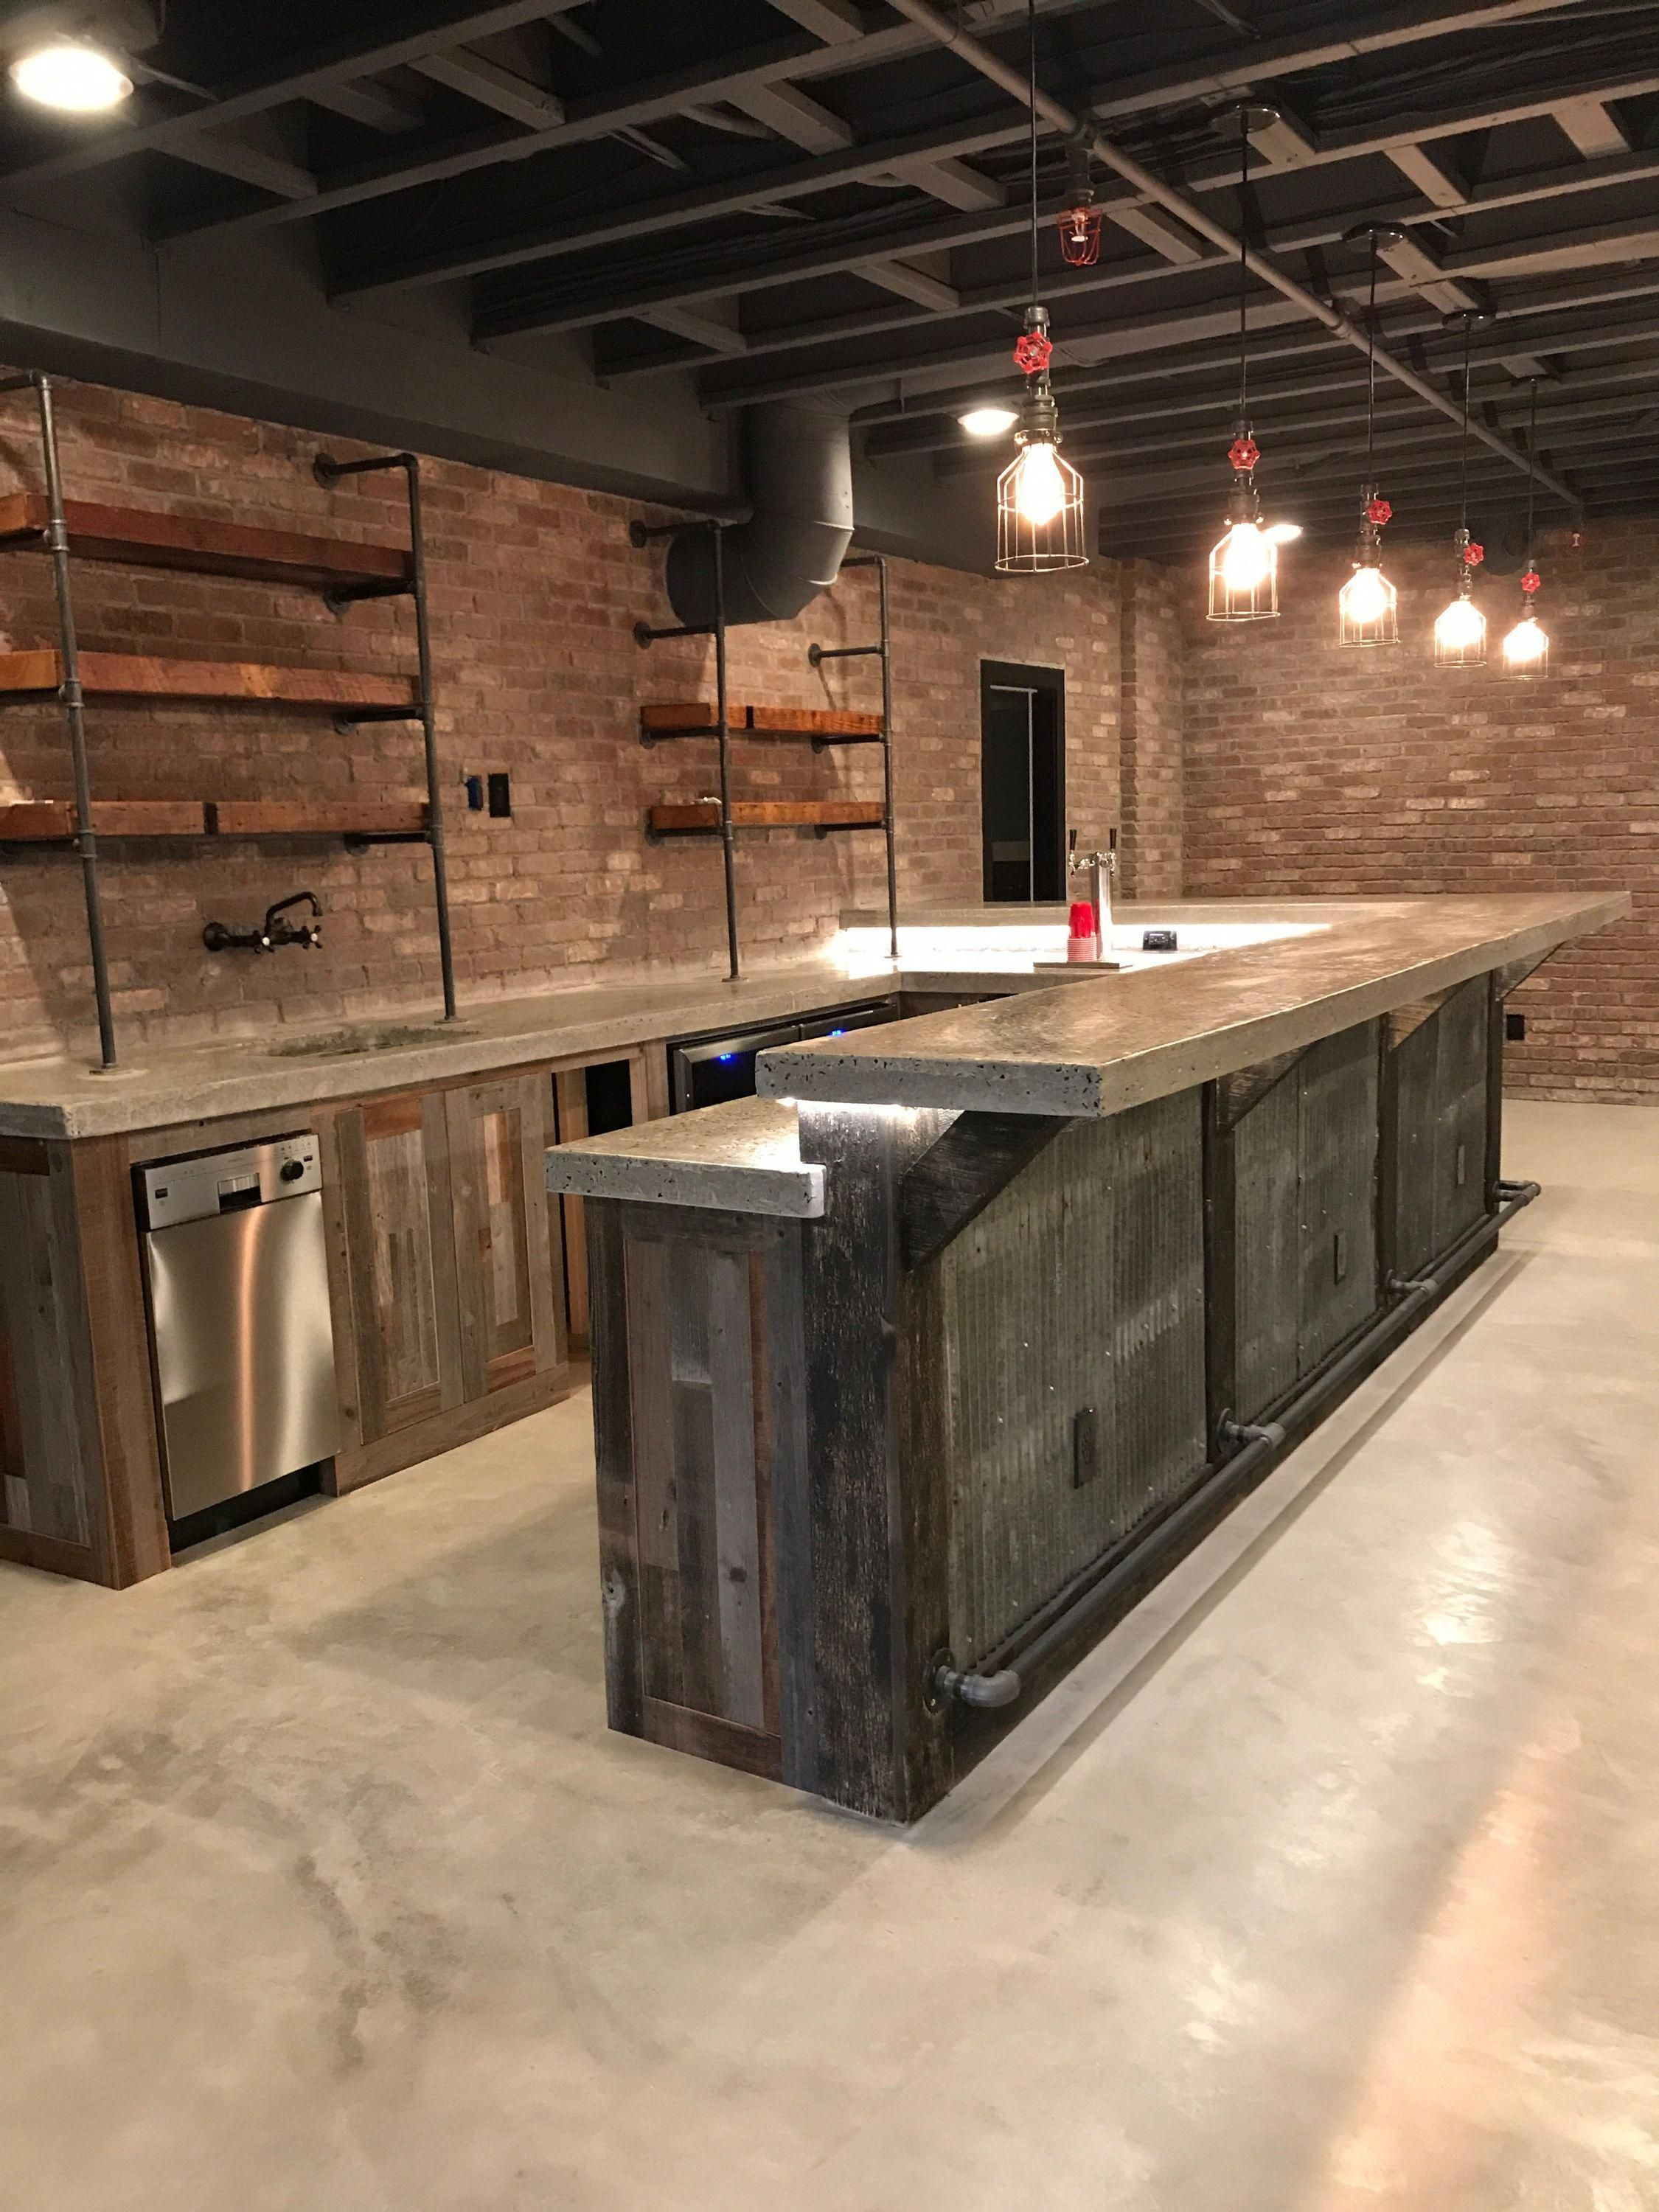 13 Clever Unfinished Basement Ideas On A Budget You Should Try Basement Bar Design Industrial Basement Bar Rustic Basement